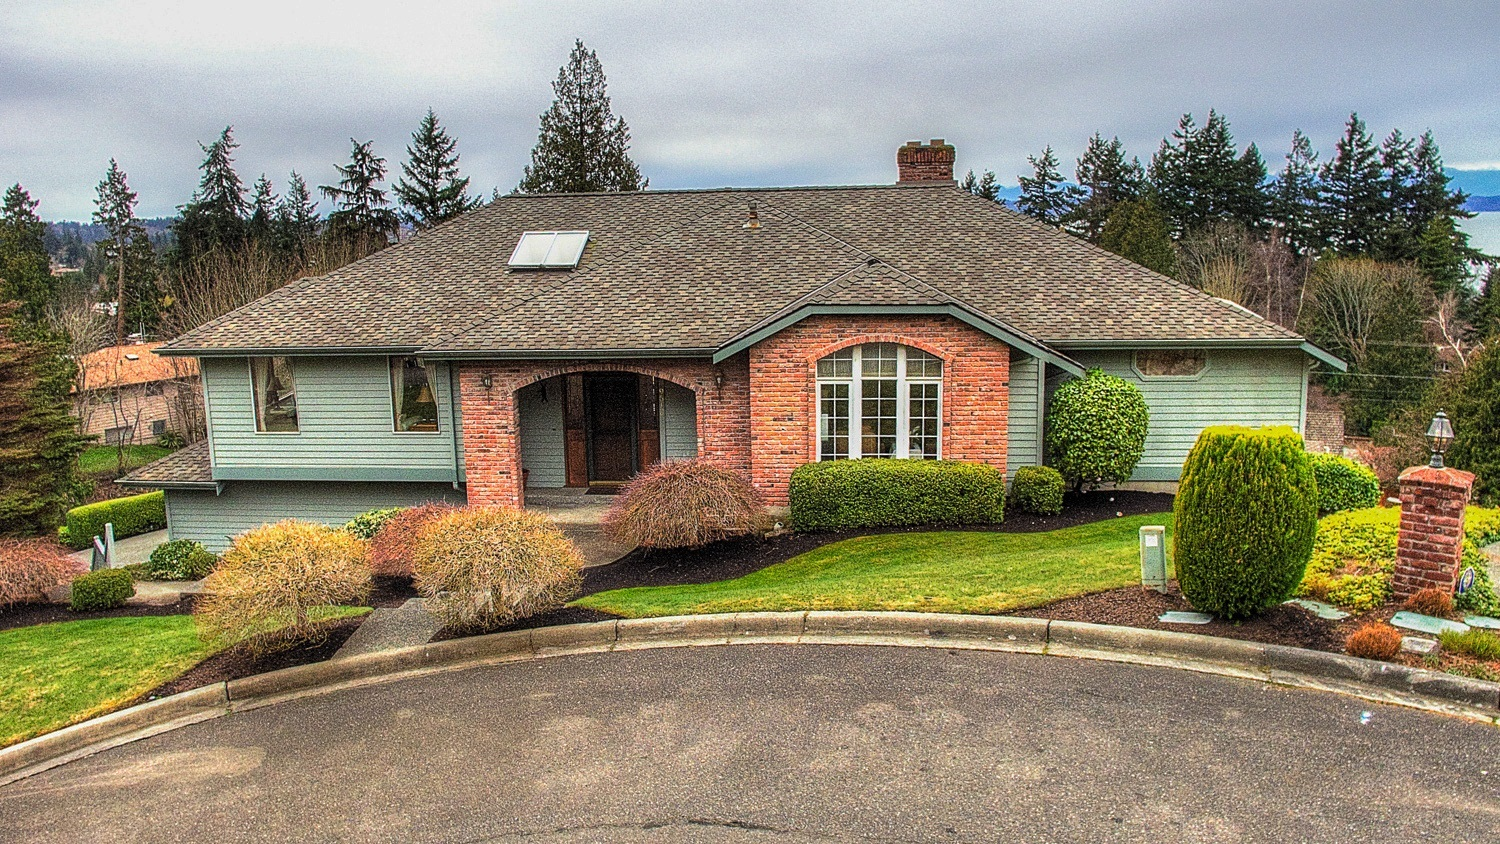 9515 Forest Dell Dr, Edmonds, WA - USA (photo 1)